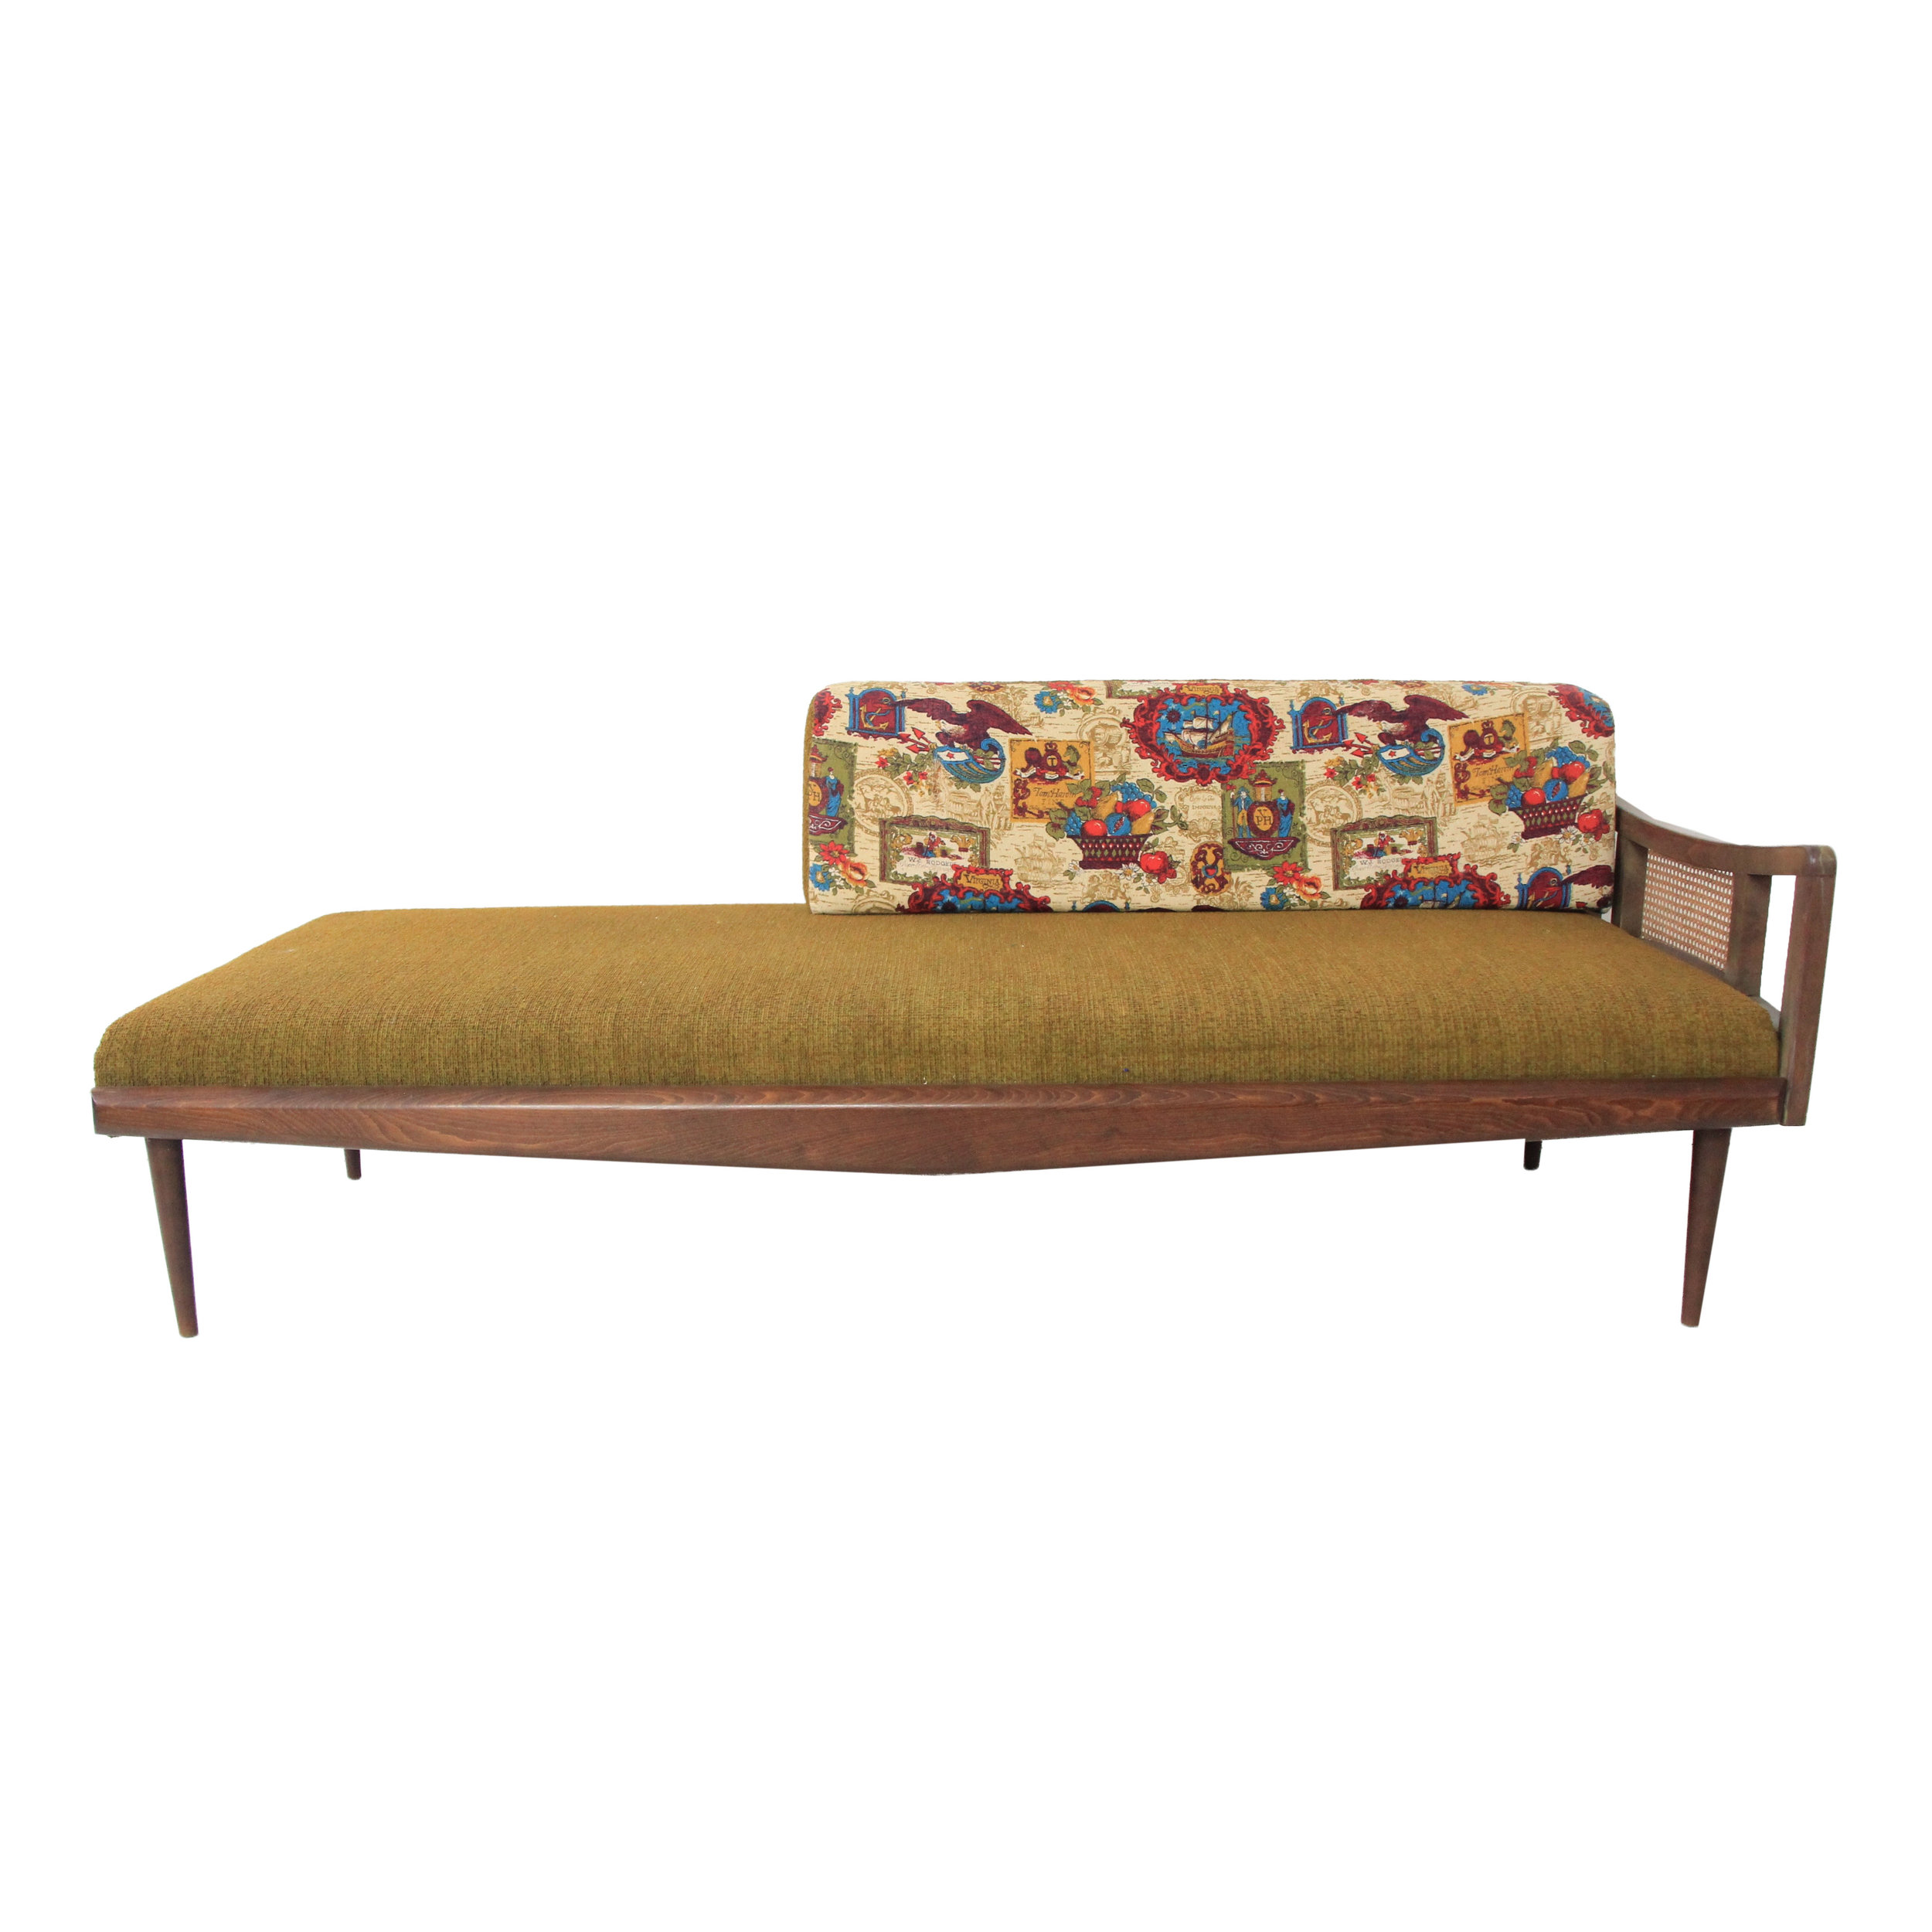 Vintage Mid Century Modern Chaise Lounge